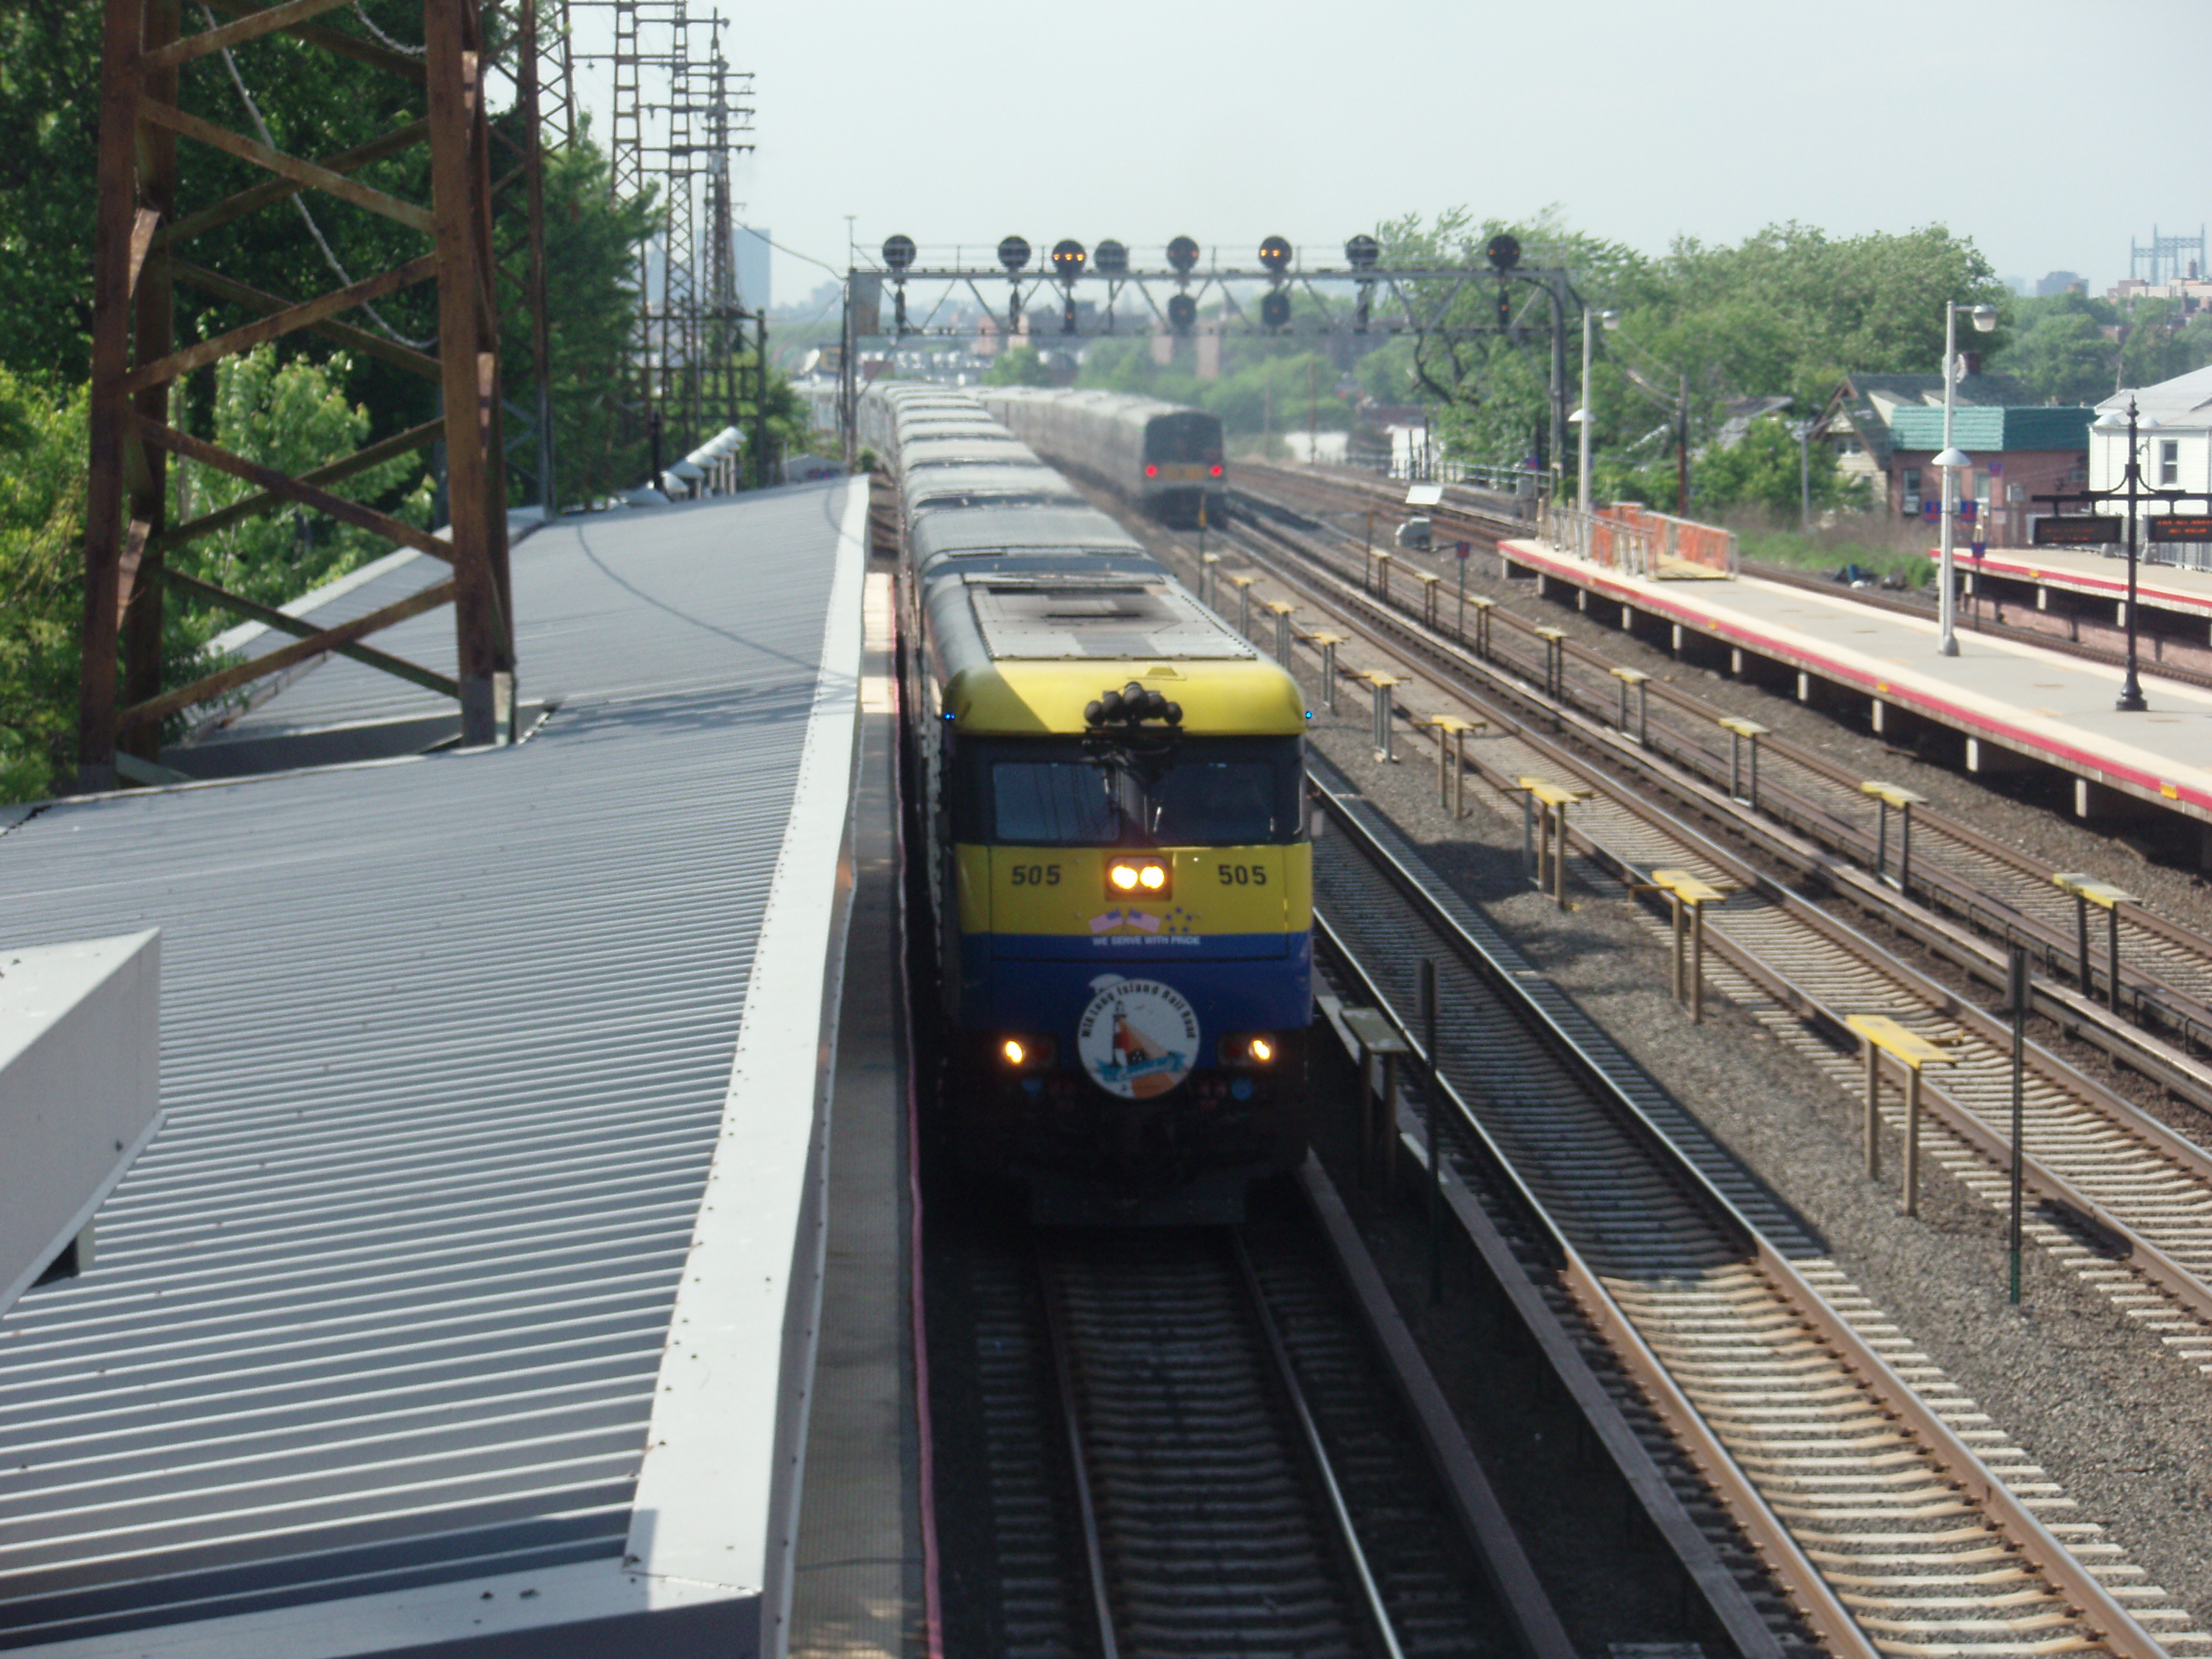 file:lirr dm30ac 505 with cannonball sign at woodside